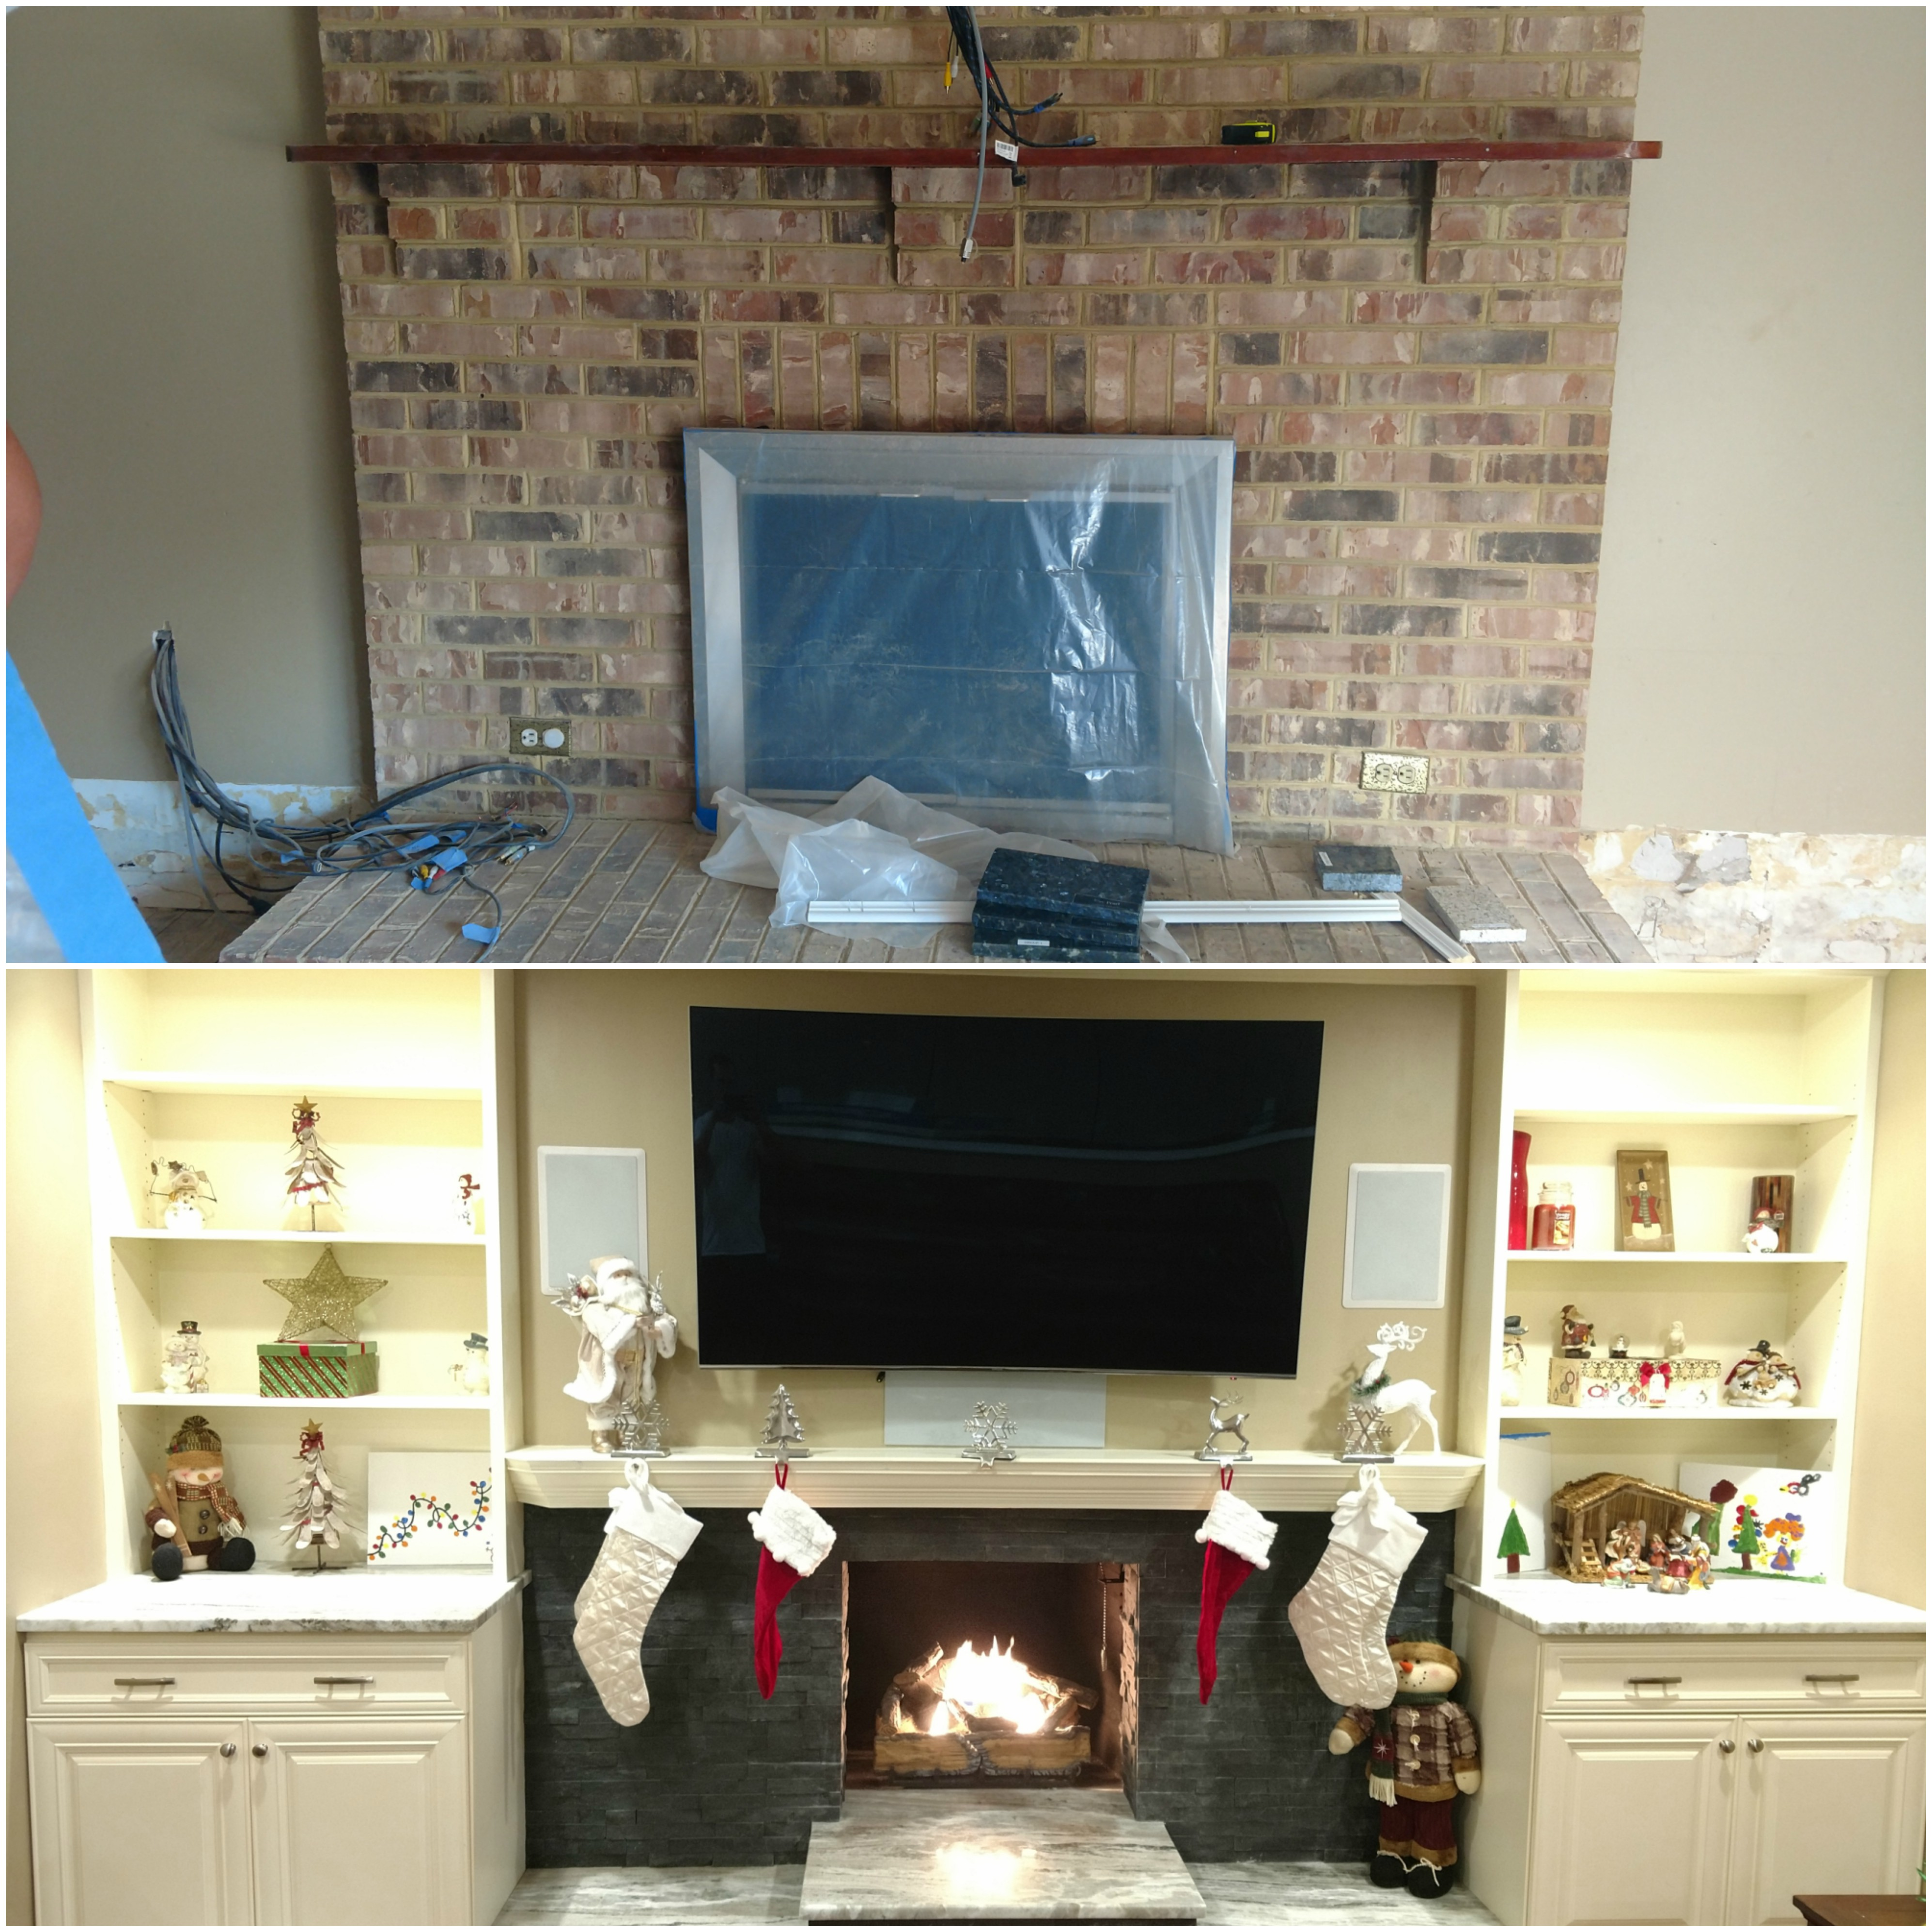 Accurate Upgrades Home Improvements LLC image 20